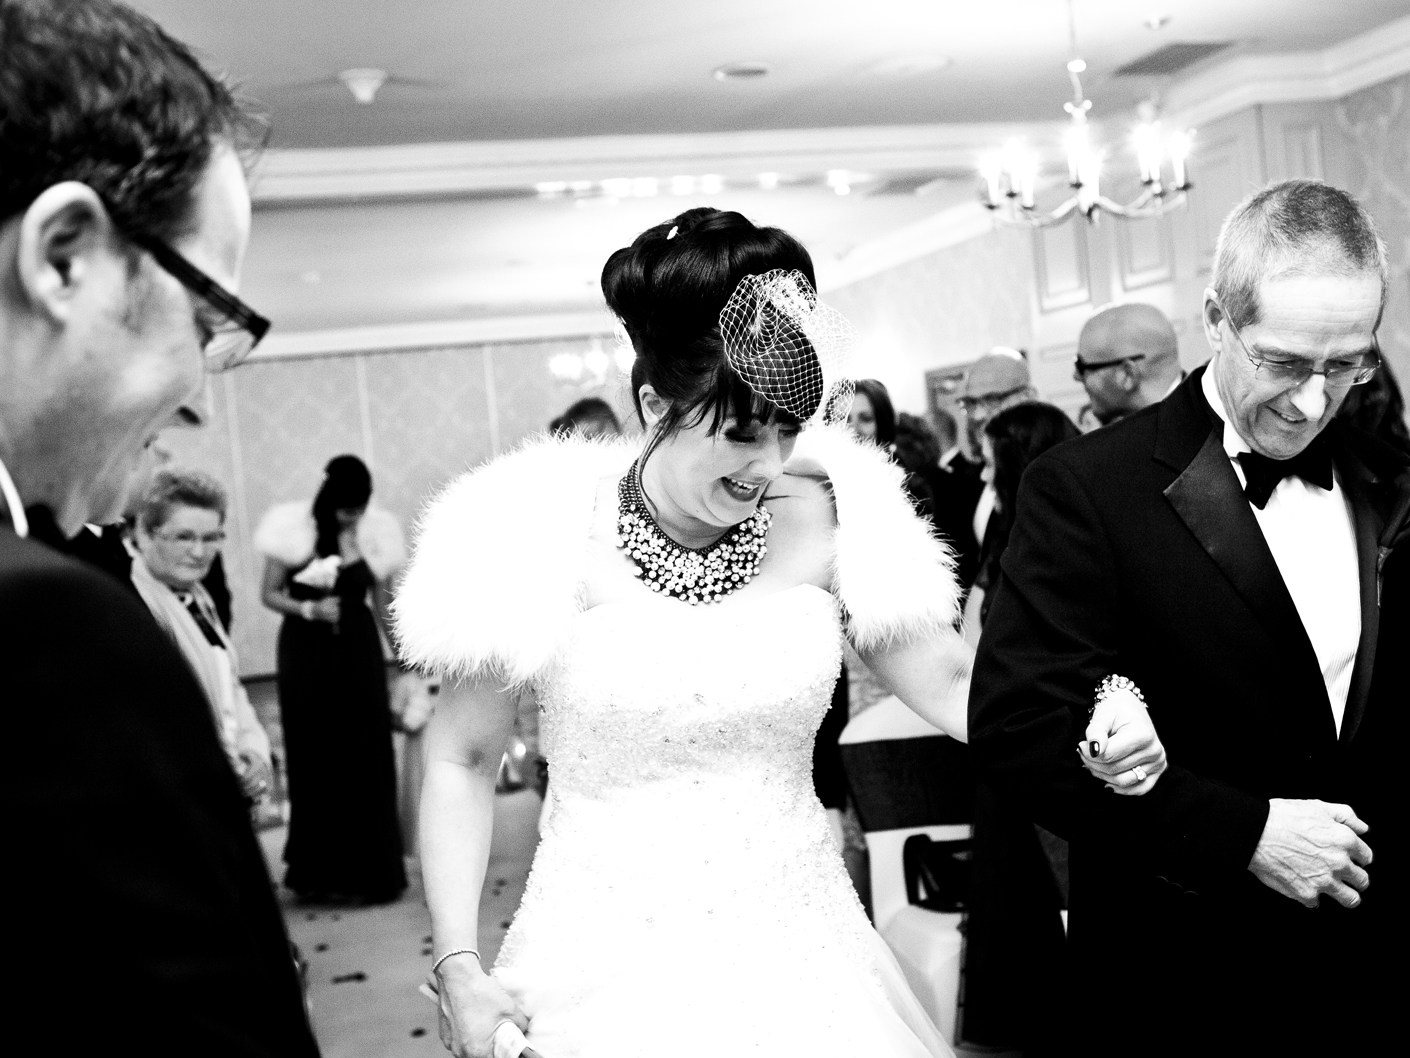 photography-the-bride-arriving-at-the-wedding-ceremony-at-mottram-hall-cheshire